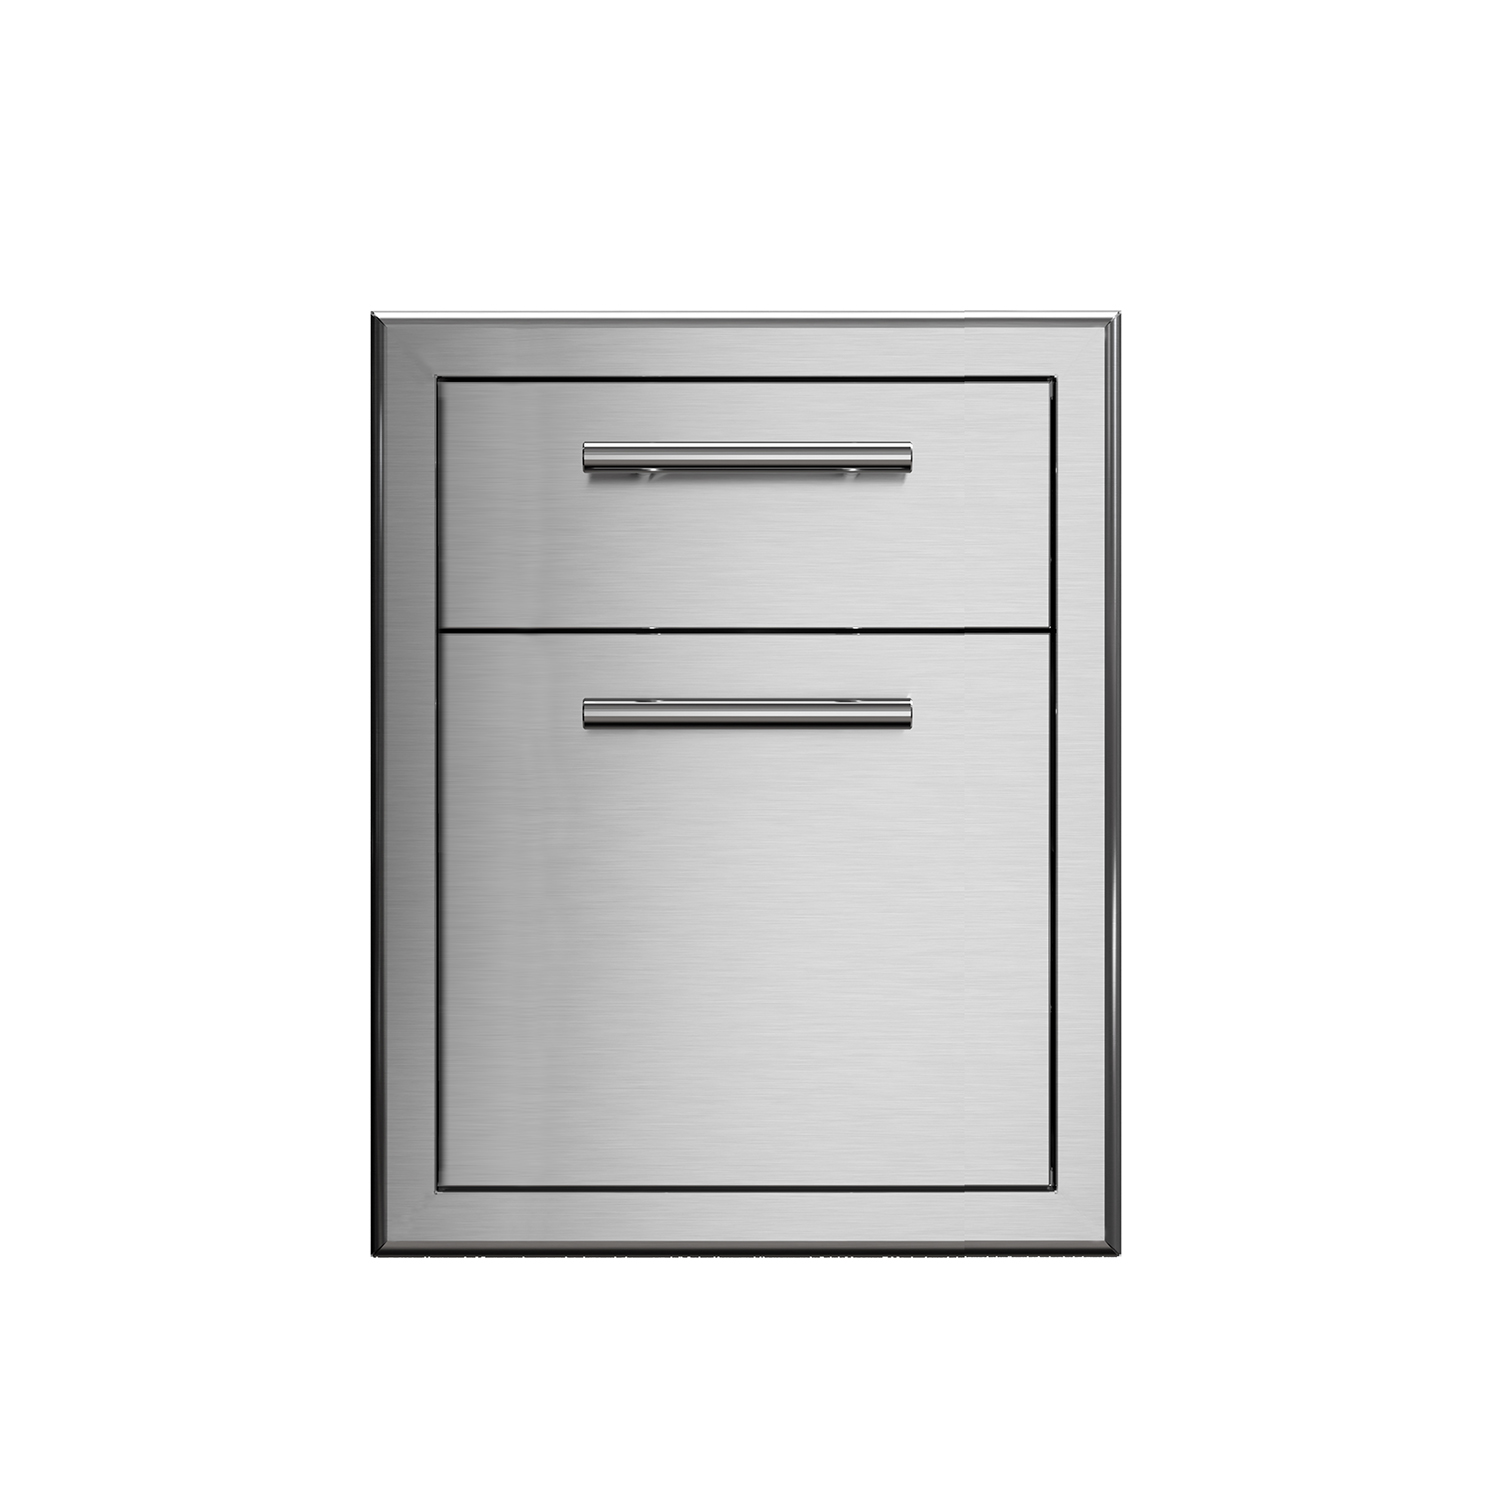 XO Ventilation 19 in Double Drawer Cabinet